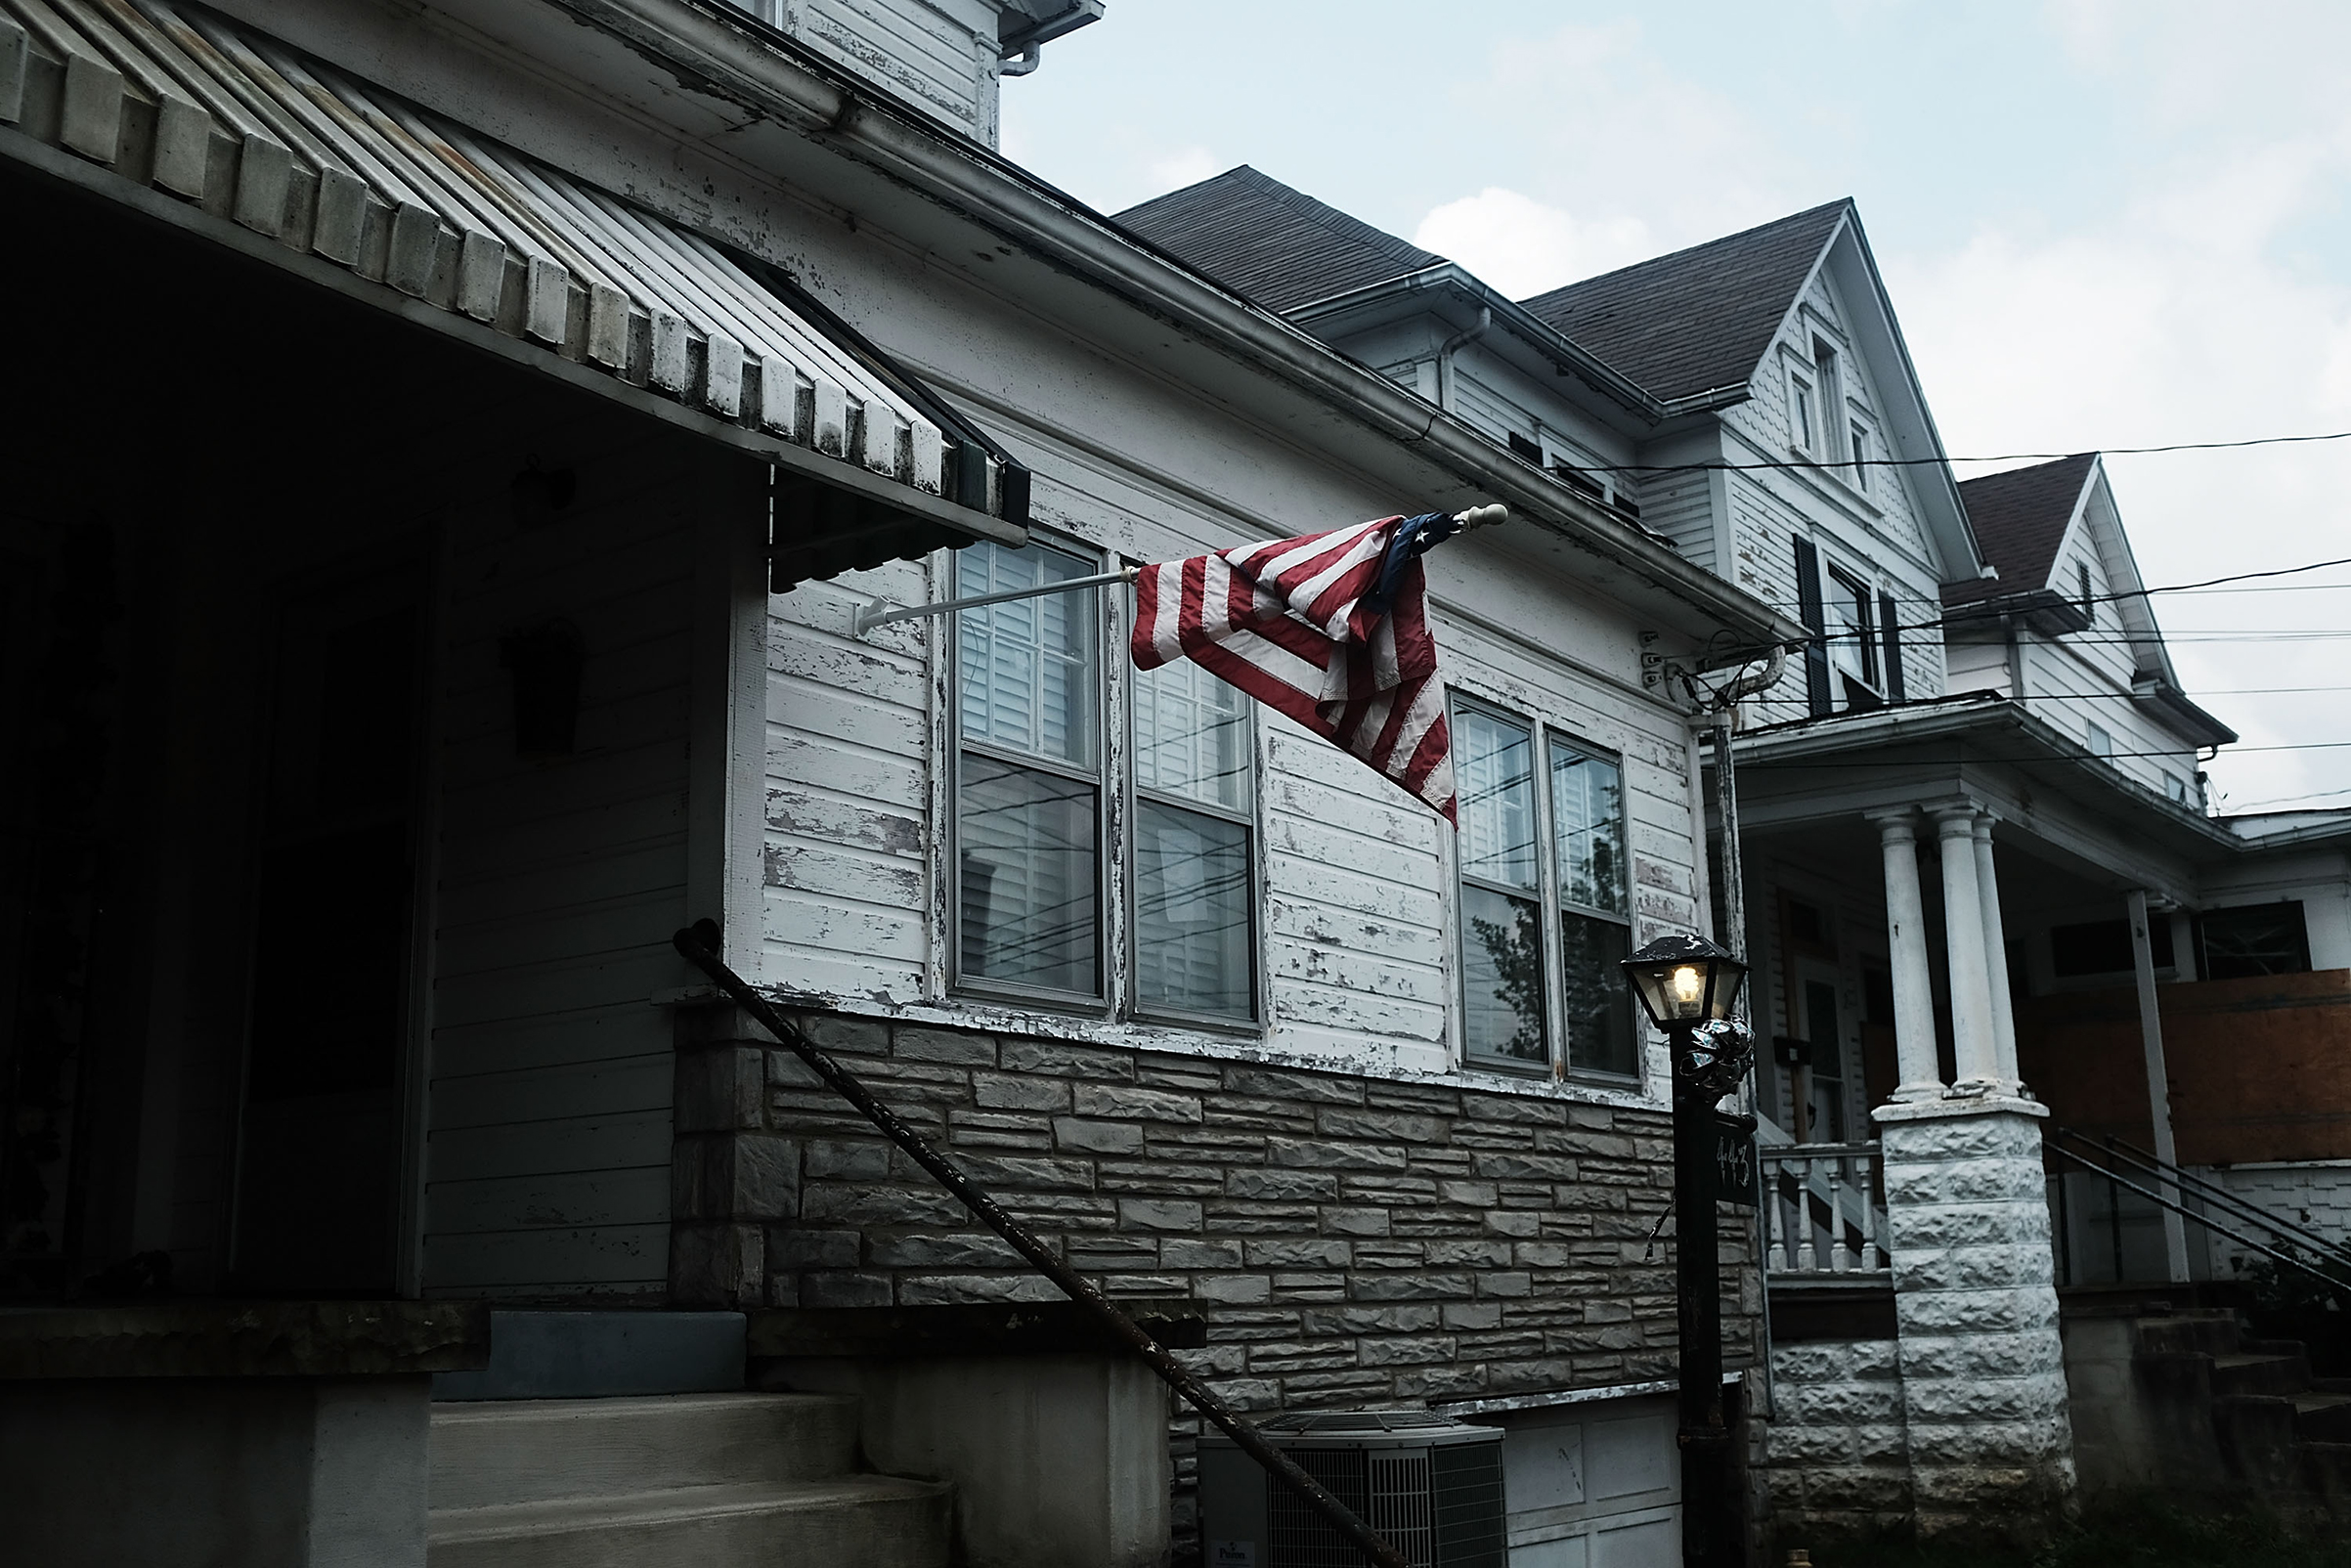 An American flag hangs outside of a home in Clarksburg, WV on Aug. 22, 2018, a state still struggling with endemic poverty and opioid abuse.